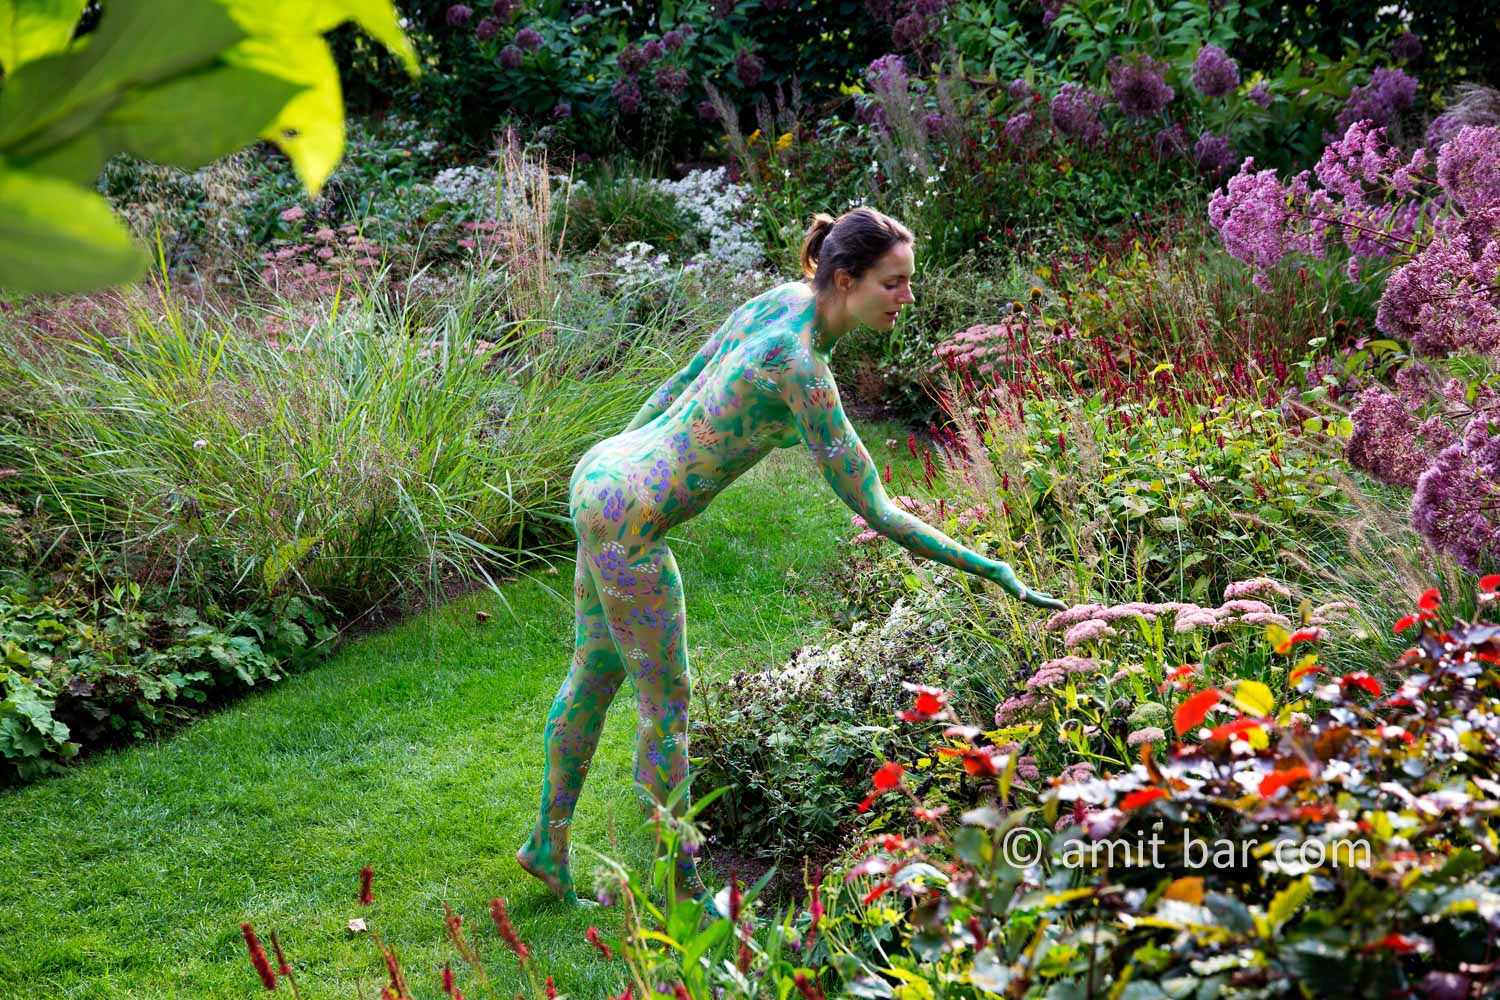 Garden flowers II: A body painted model is walking on a cloudy afternoon among the flowers of a beautiful garden in De Achterhoek, The Netherlands.